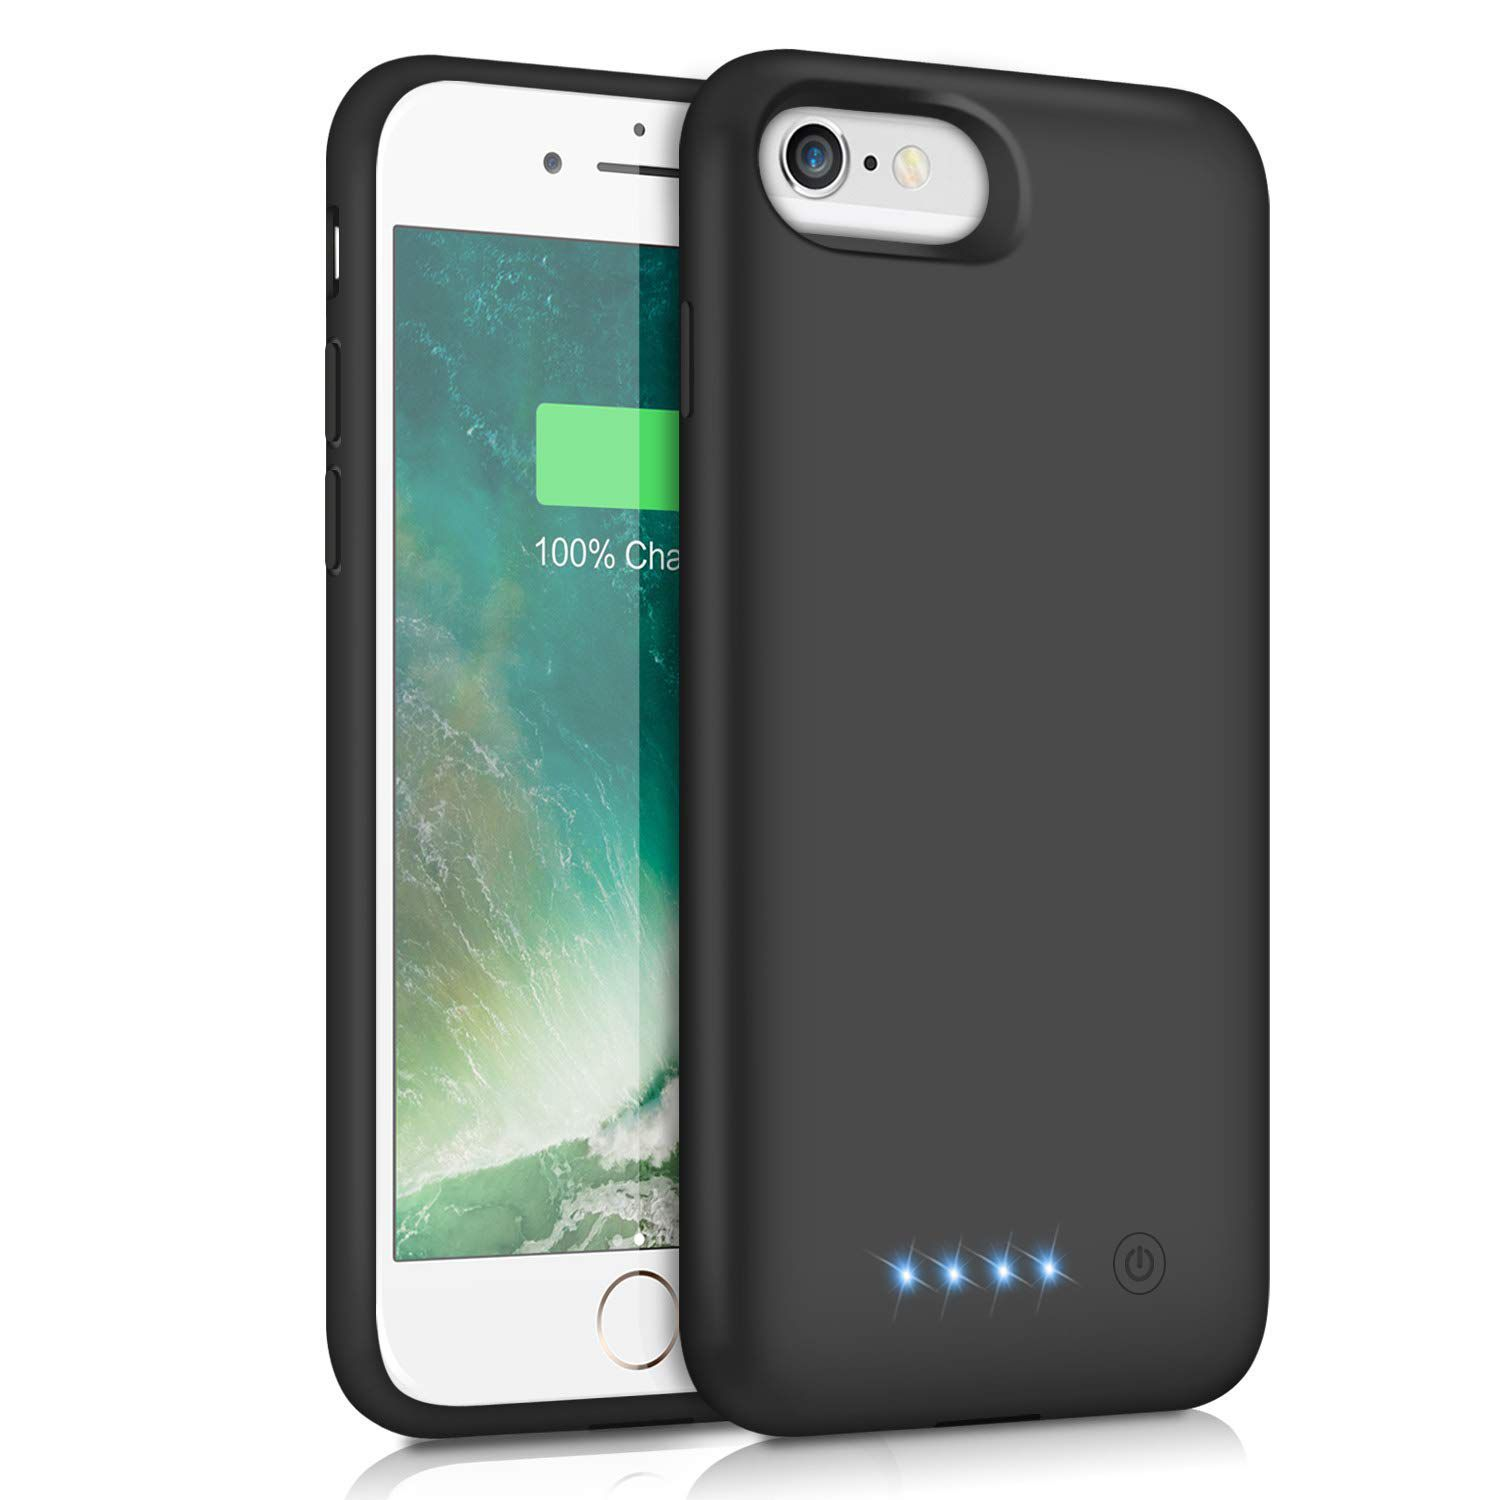 official photos bf2a7 b9a2e The 9 Best iPhone Battery Cases of 2019